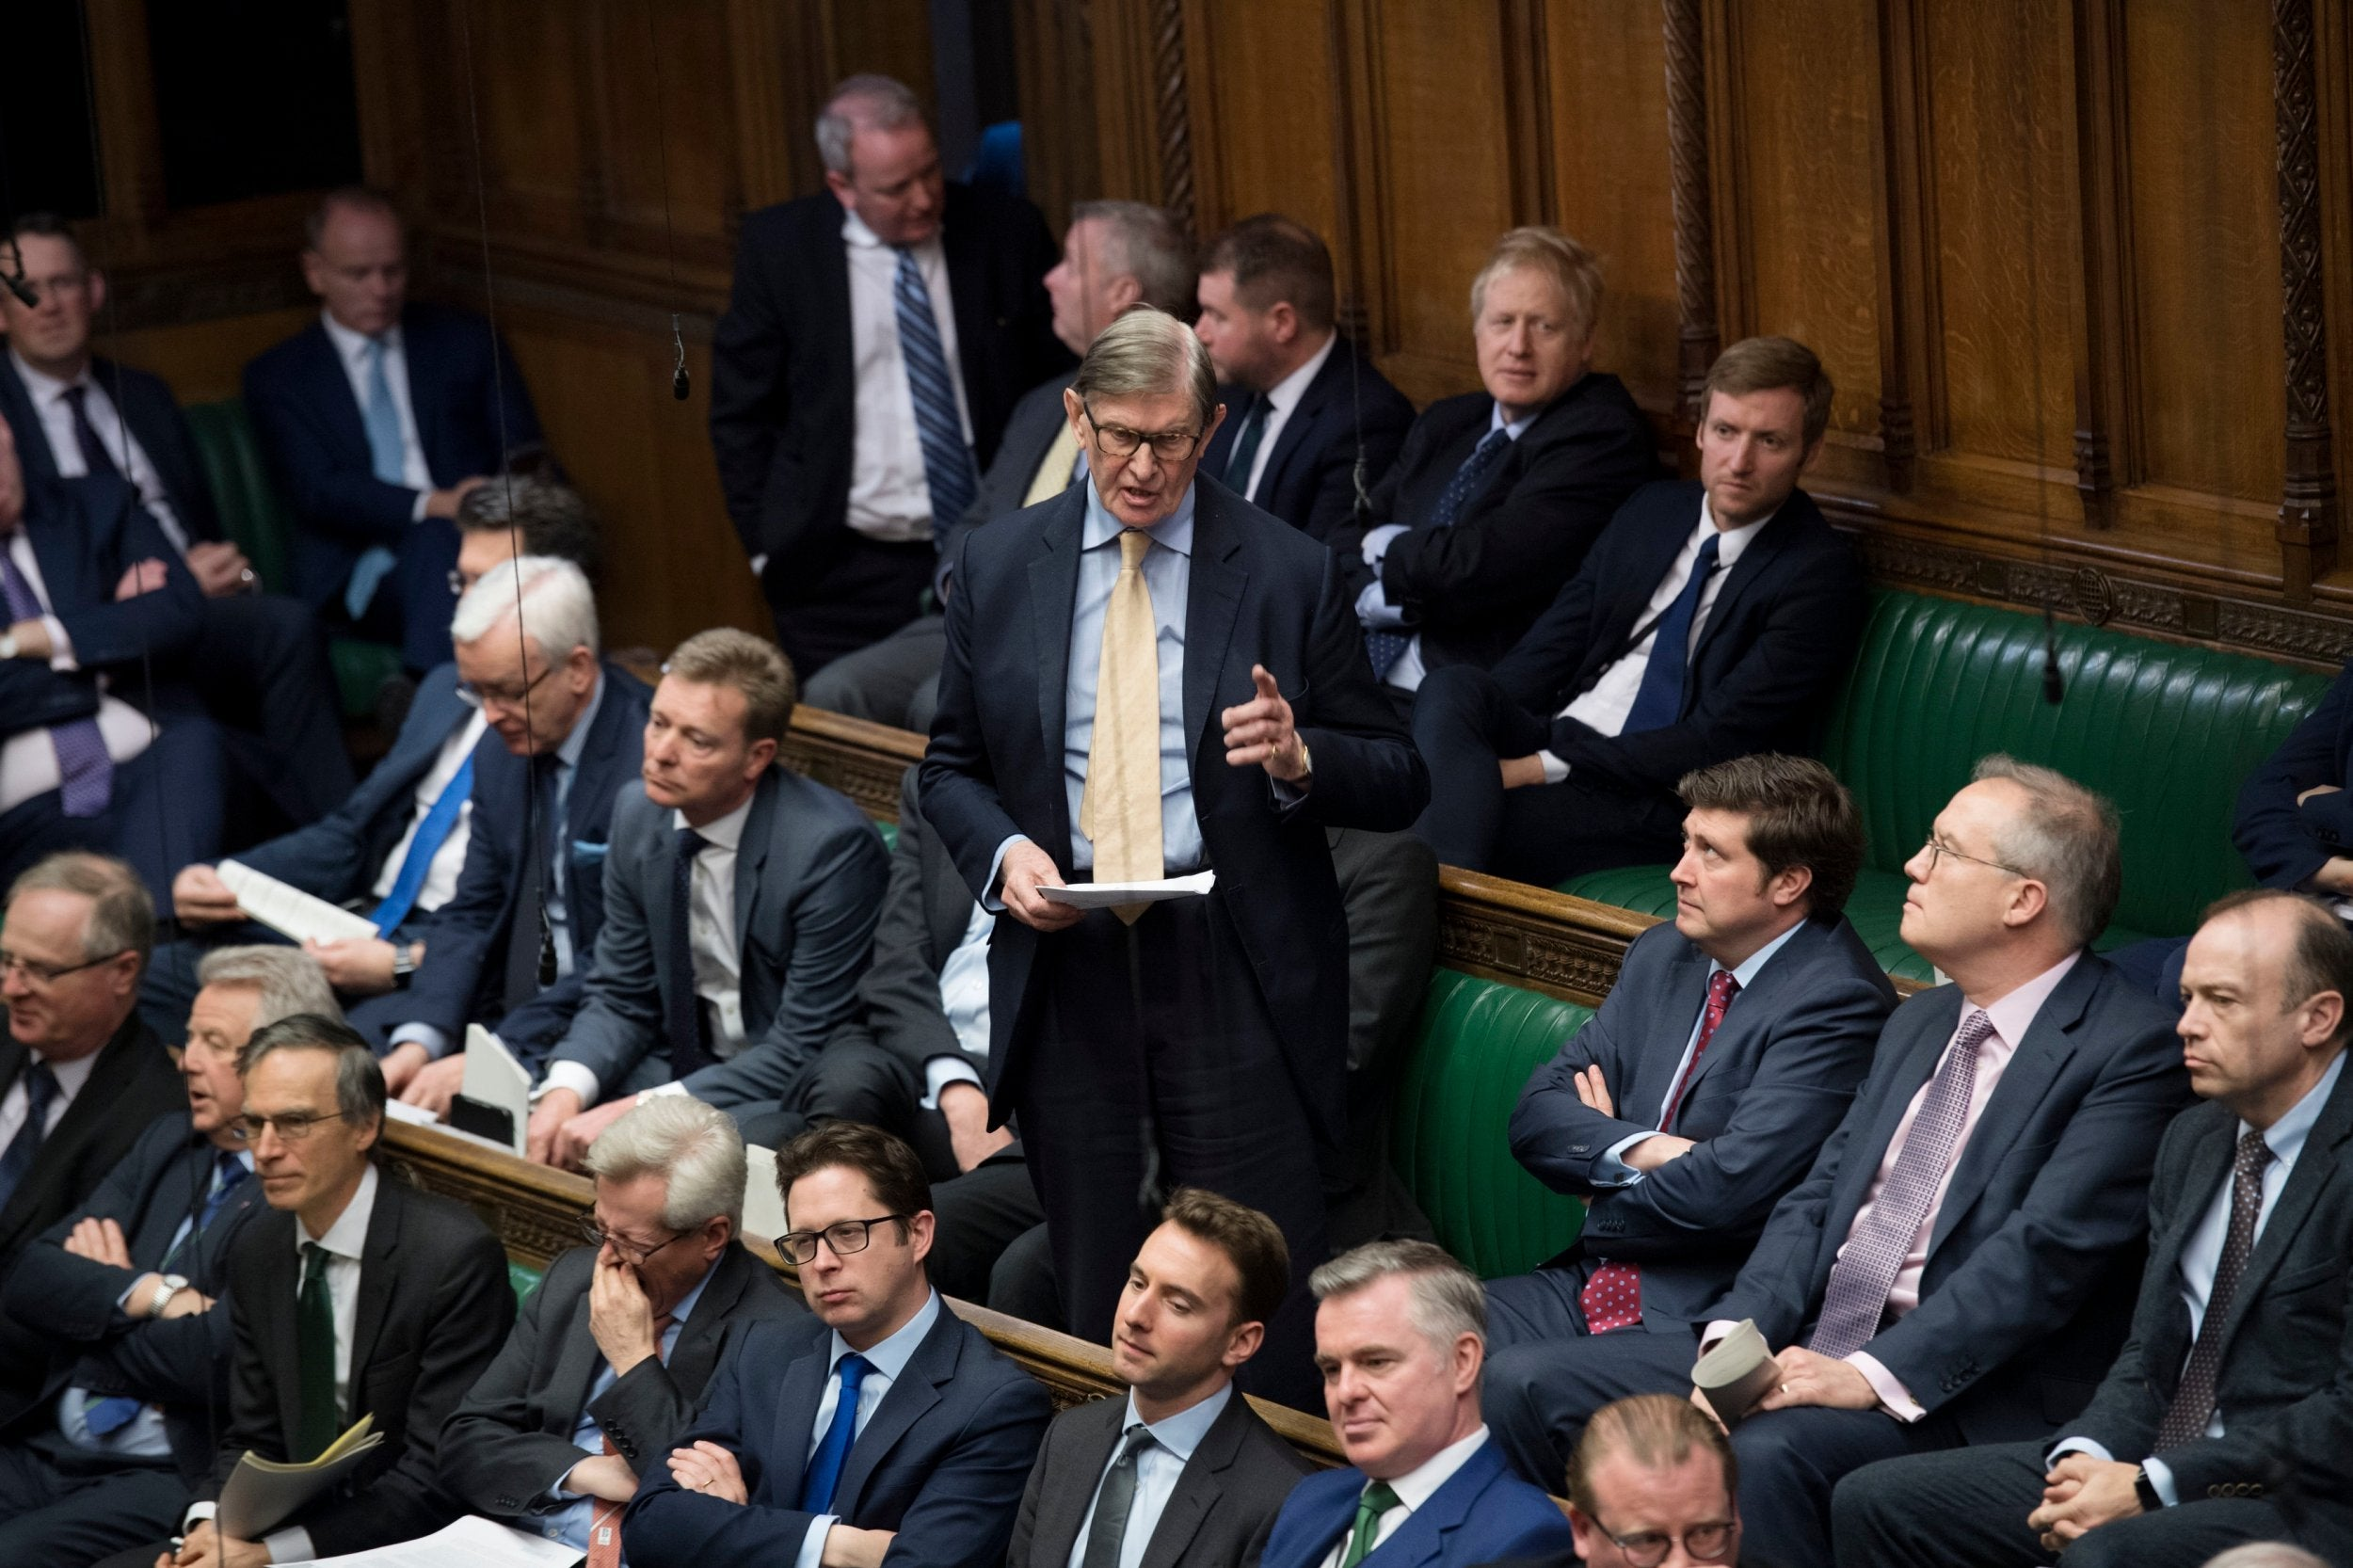 The Top 10: MPs related to unlikely people